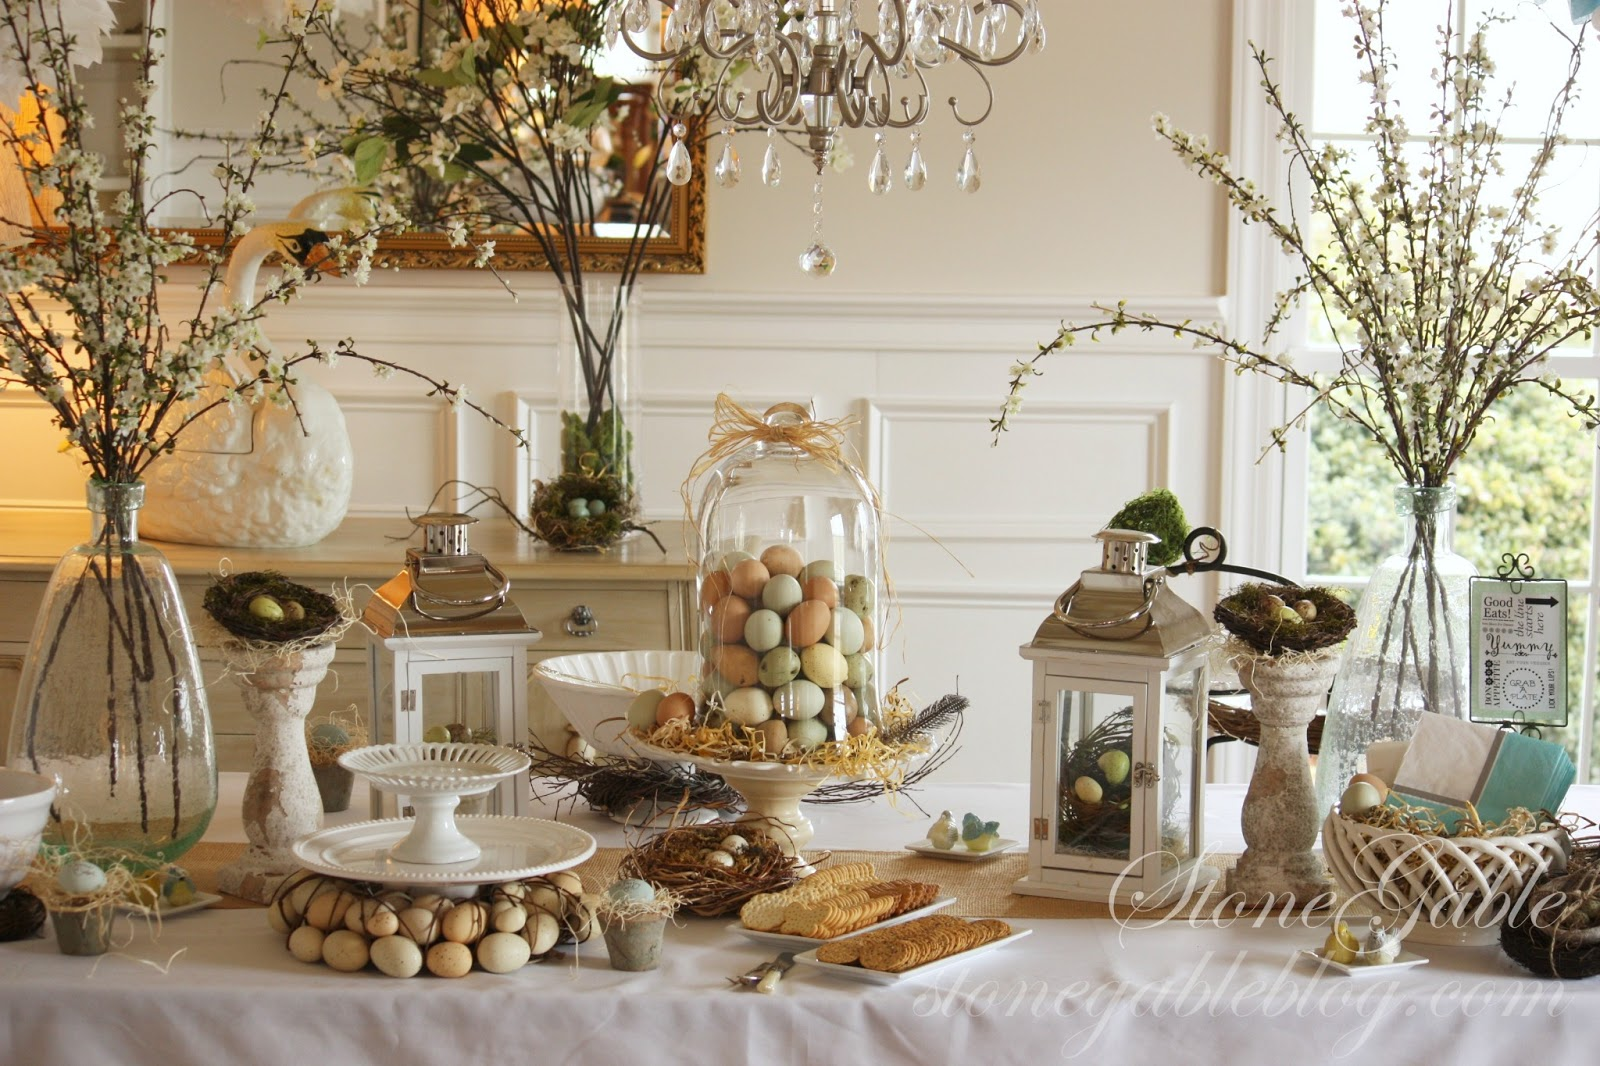 spring bridal shower part i stonegable